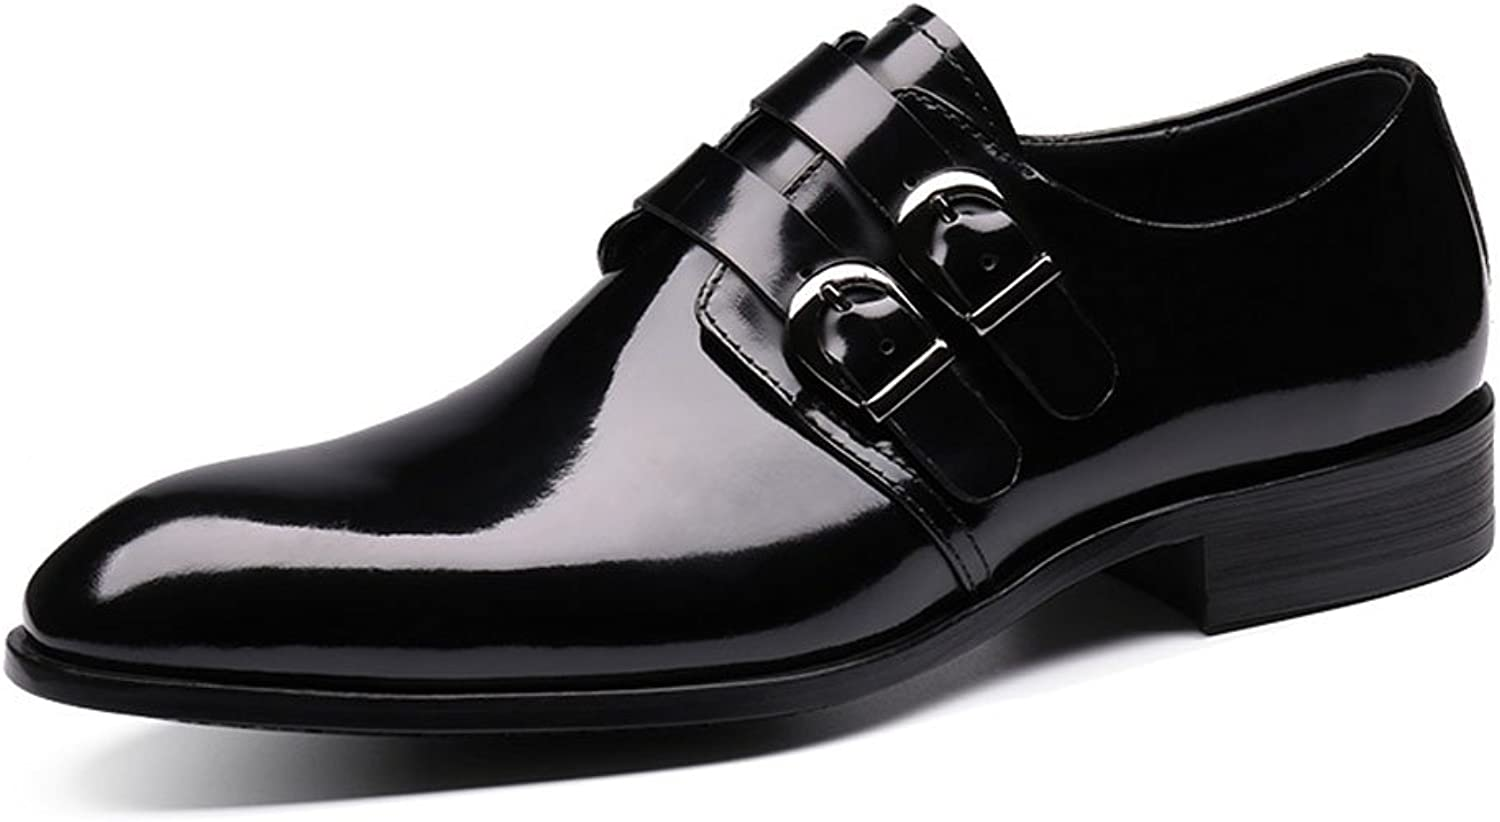 MedzRE Men's Double-Strap Monk shoes Formal Oxfords in Black Leather